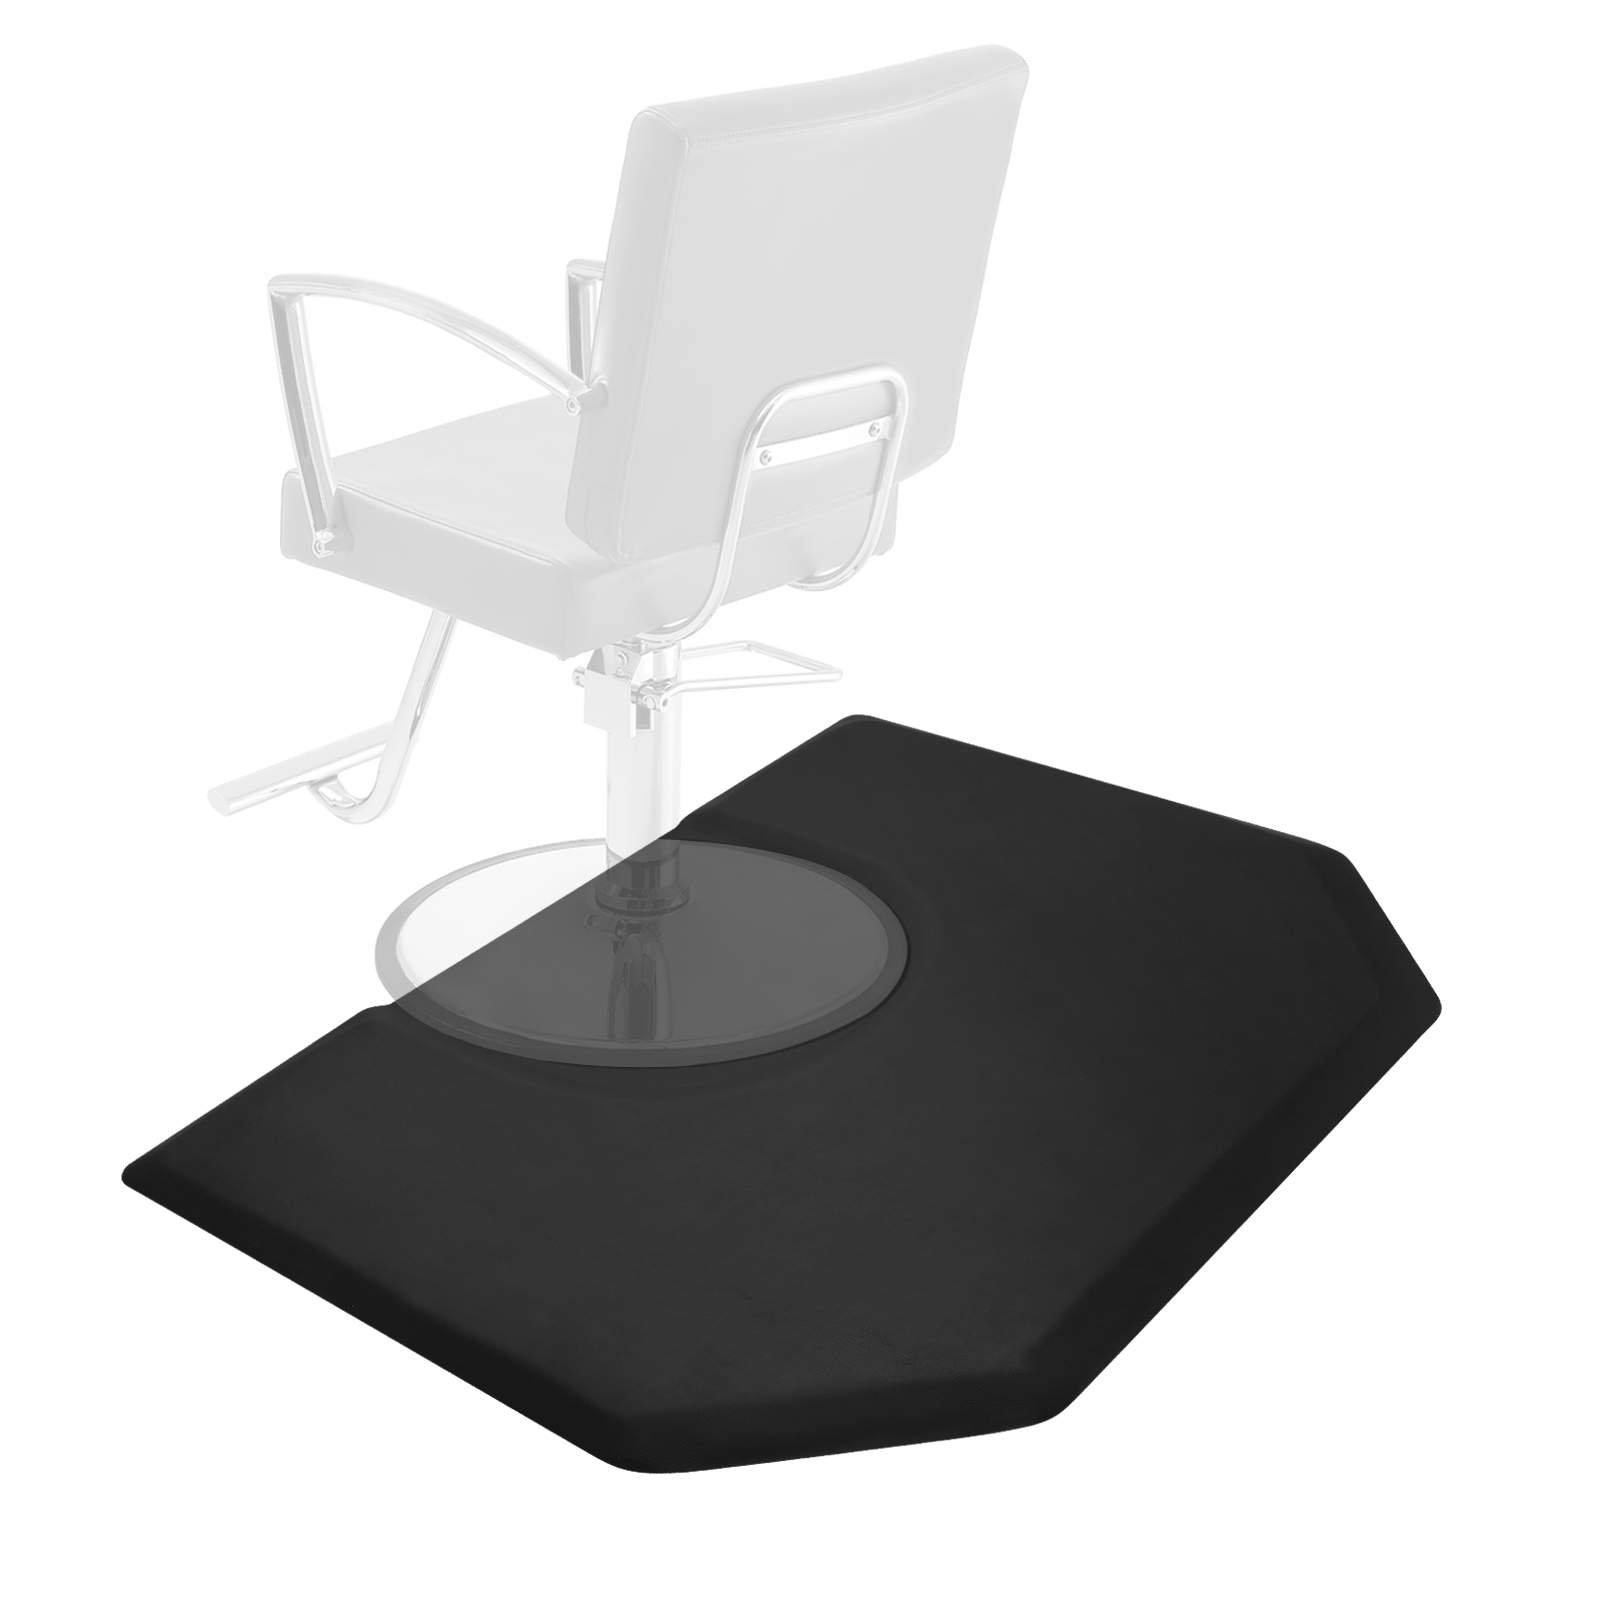 Saloniture 5 ft. x 4 ft. Salon & Barber Shop Chair Anti-Fatigue Mat - Black Hexagon - 1 in. Thick by Saloniture